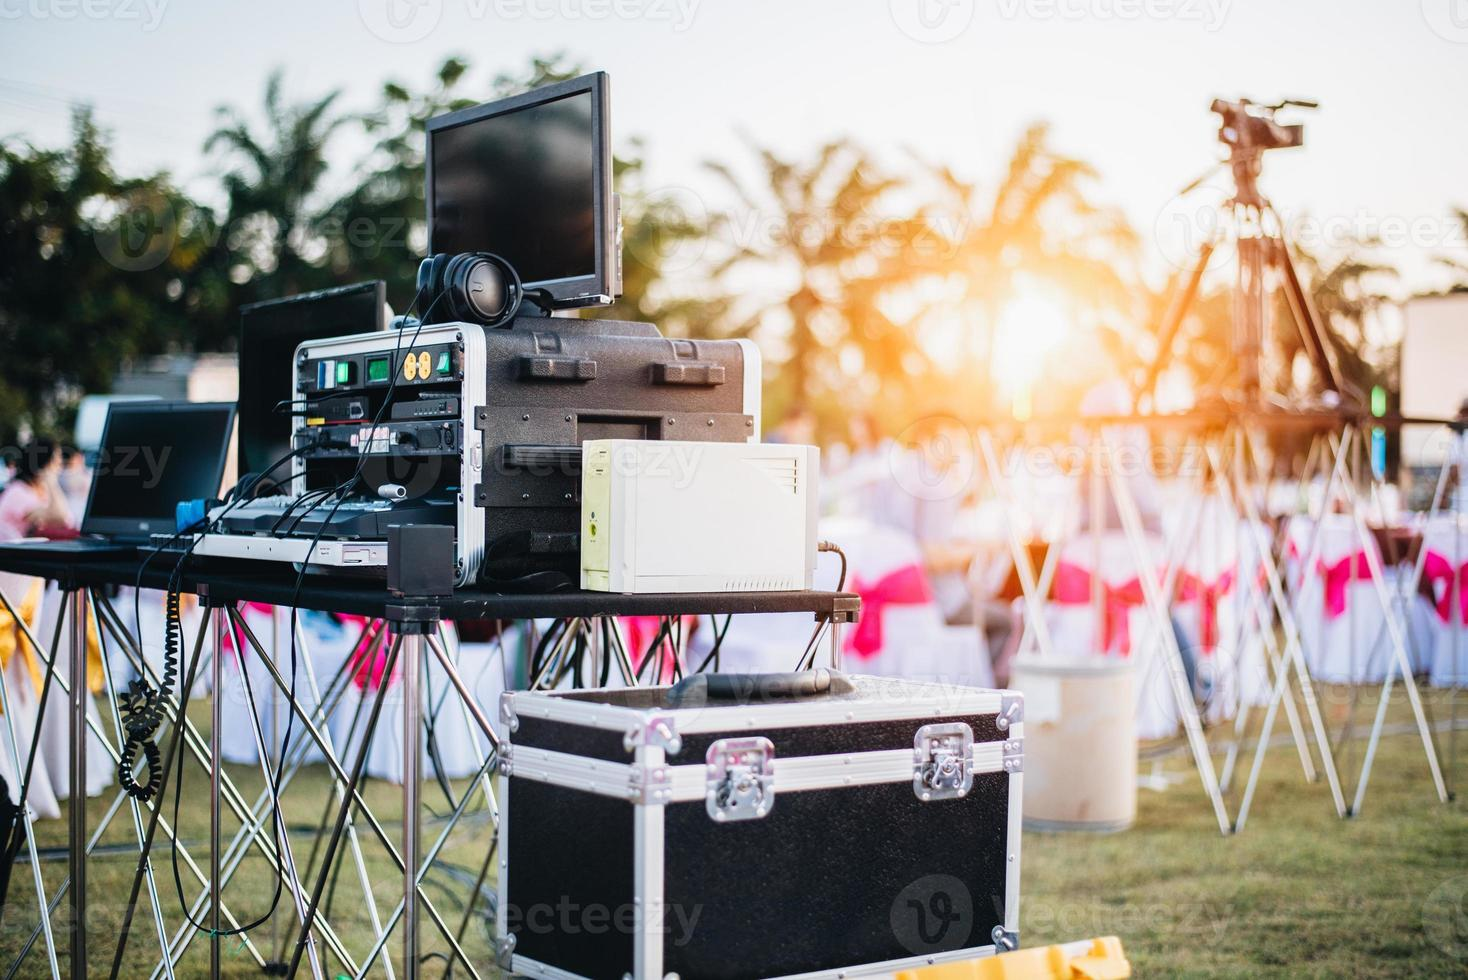 Mixing equalizer at outdoor in music party festival with dinner table photo